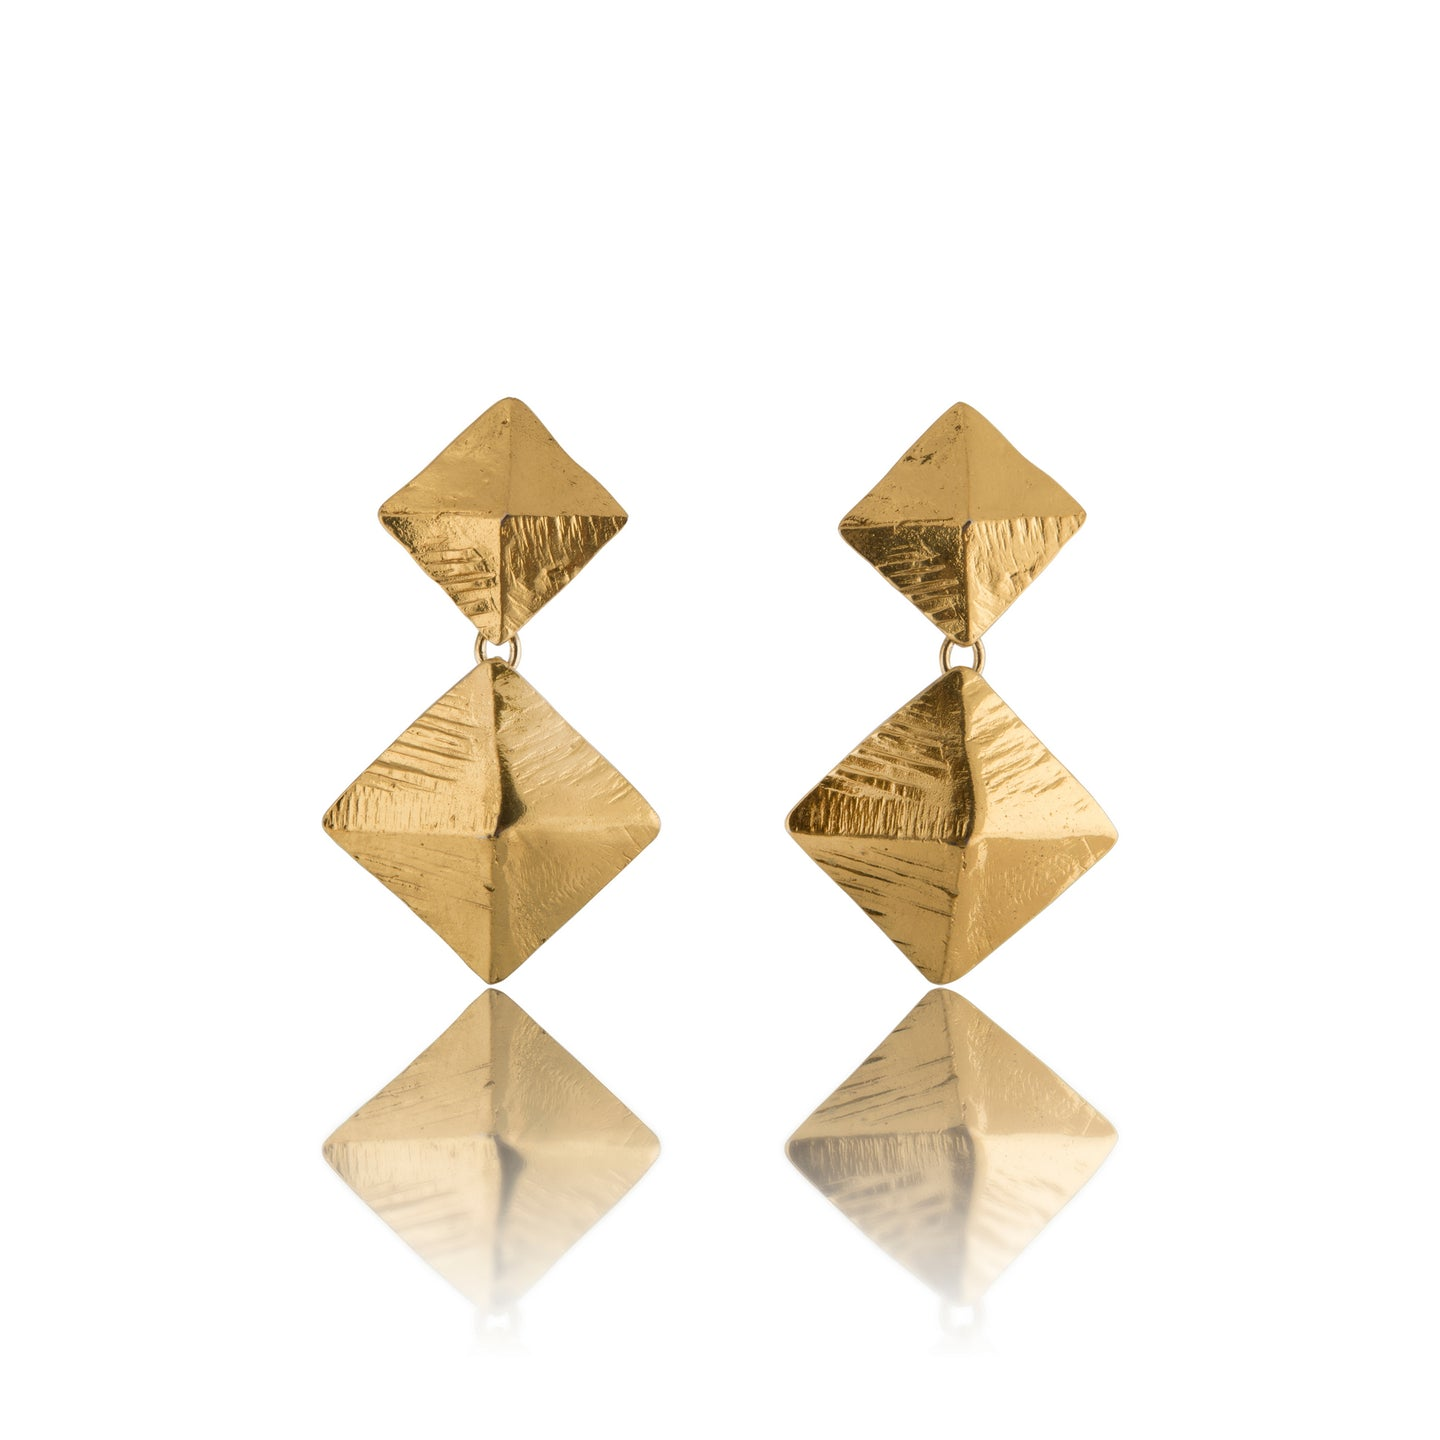 Vintage Yves Saint Laurent Chunky Diamond Shaped Earrings